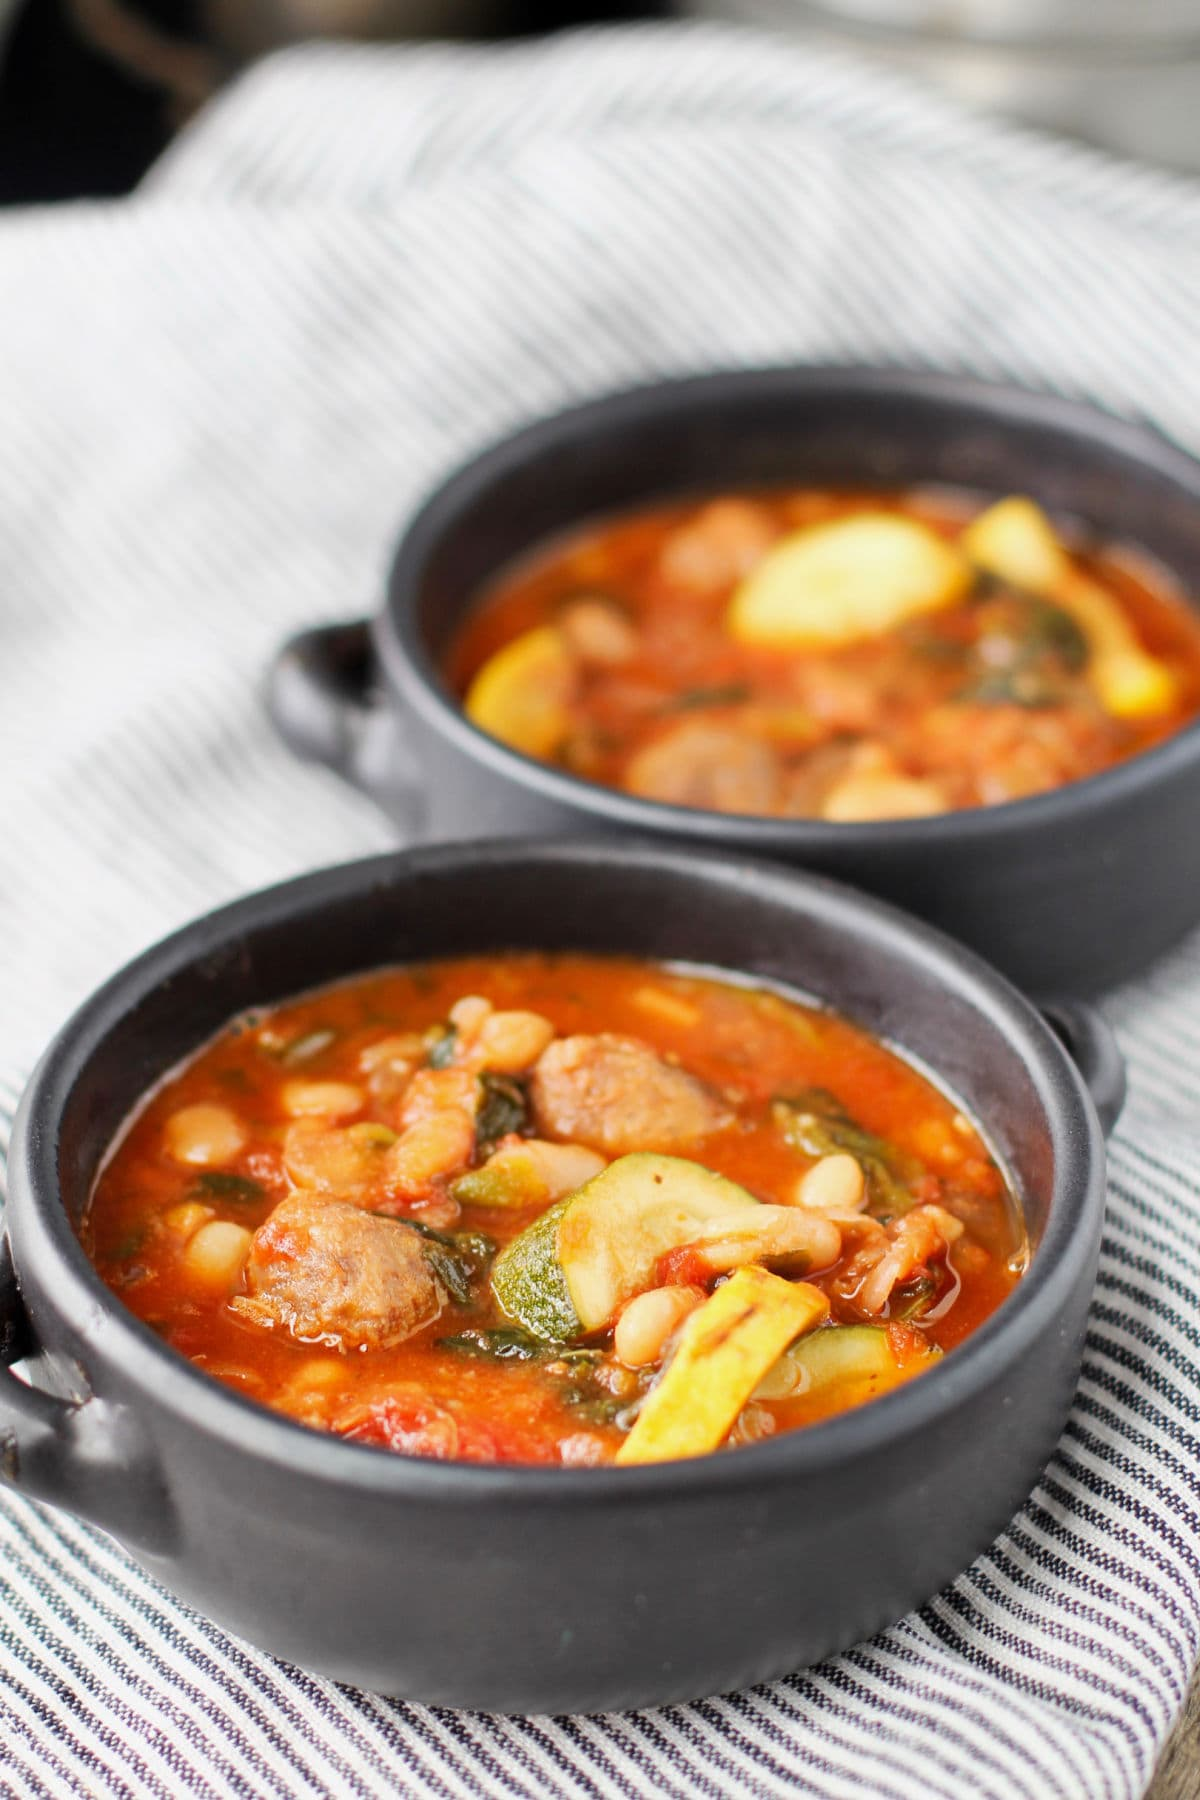 Sausage, Vegetable, and Bean Soup in bowls.